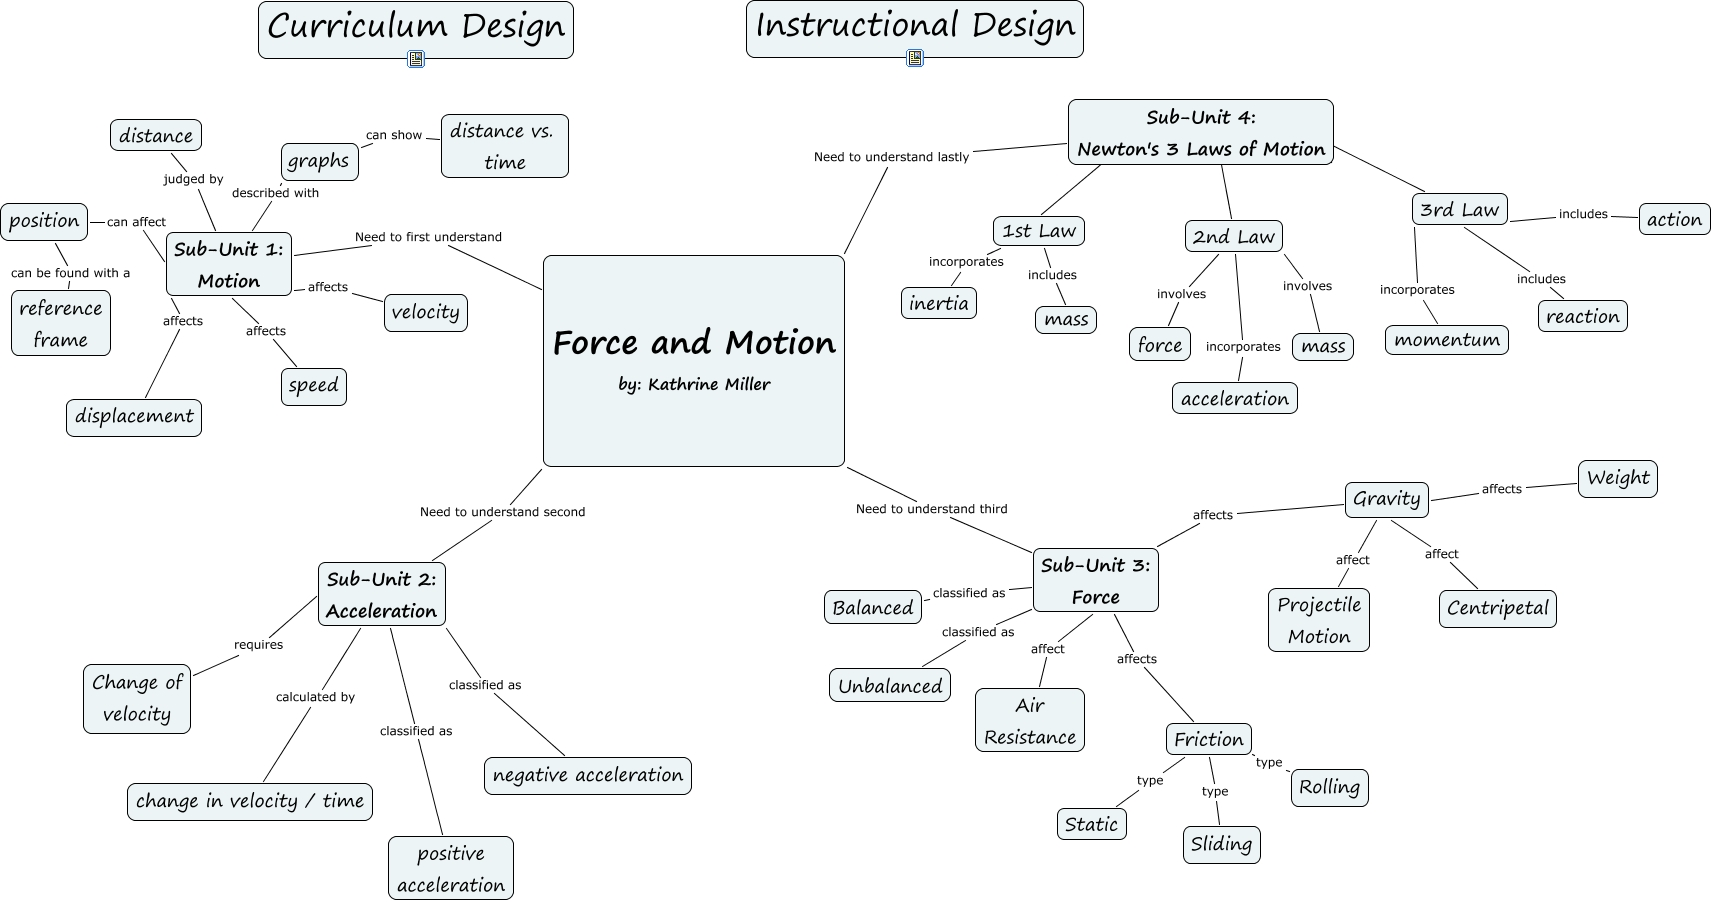 Kmiller Force And Motion Id Project What Are The Key Concepts Of